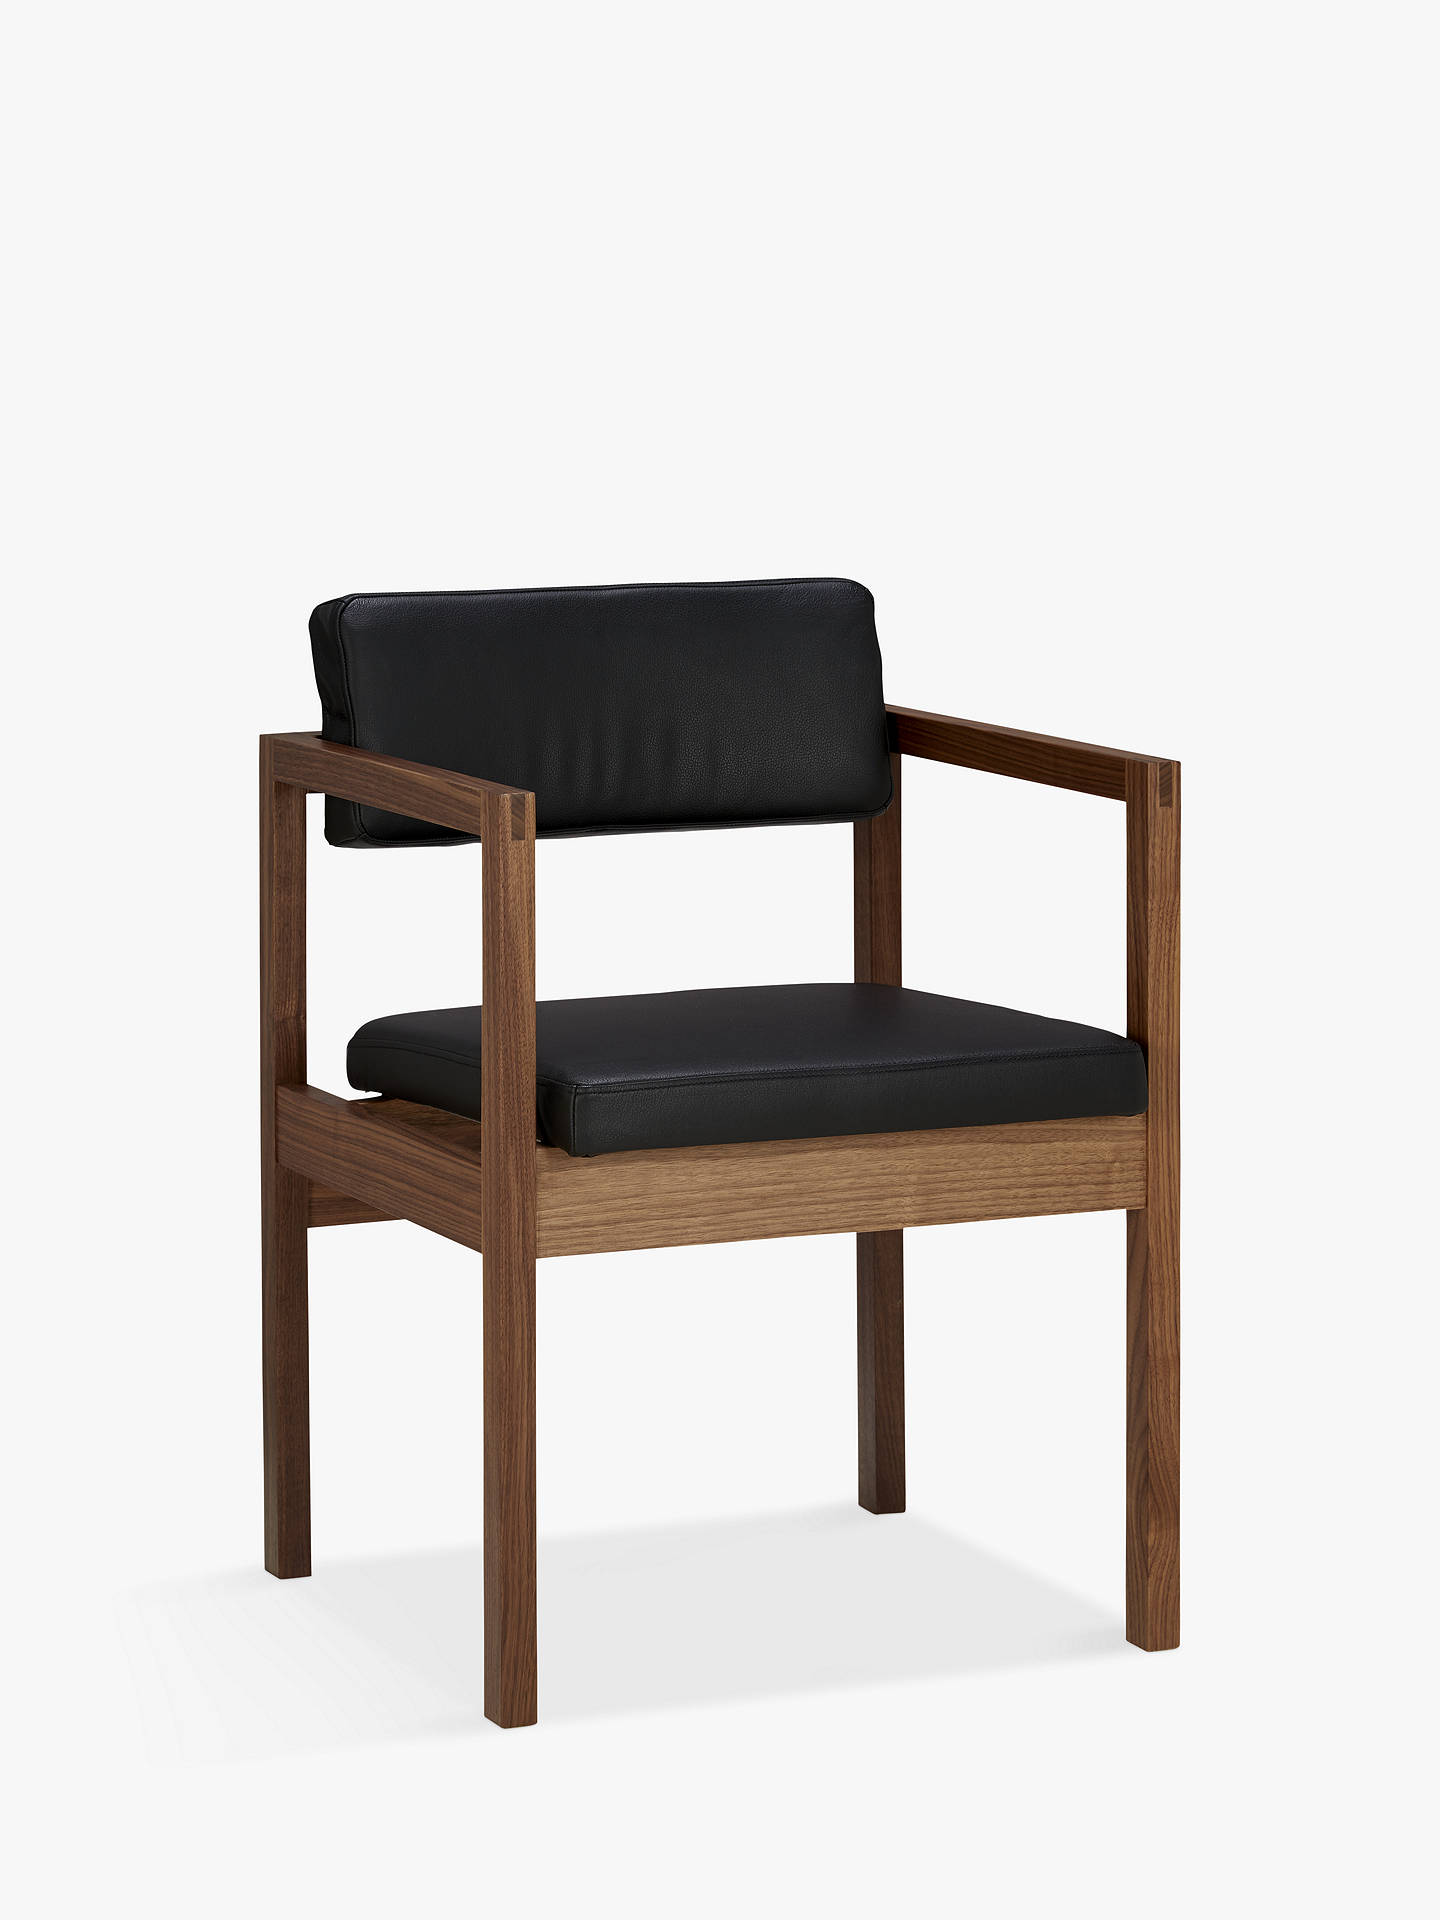 Robin Day For Case West Street Chair Walnut At John Lewis Partners